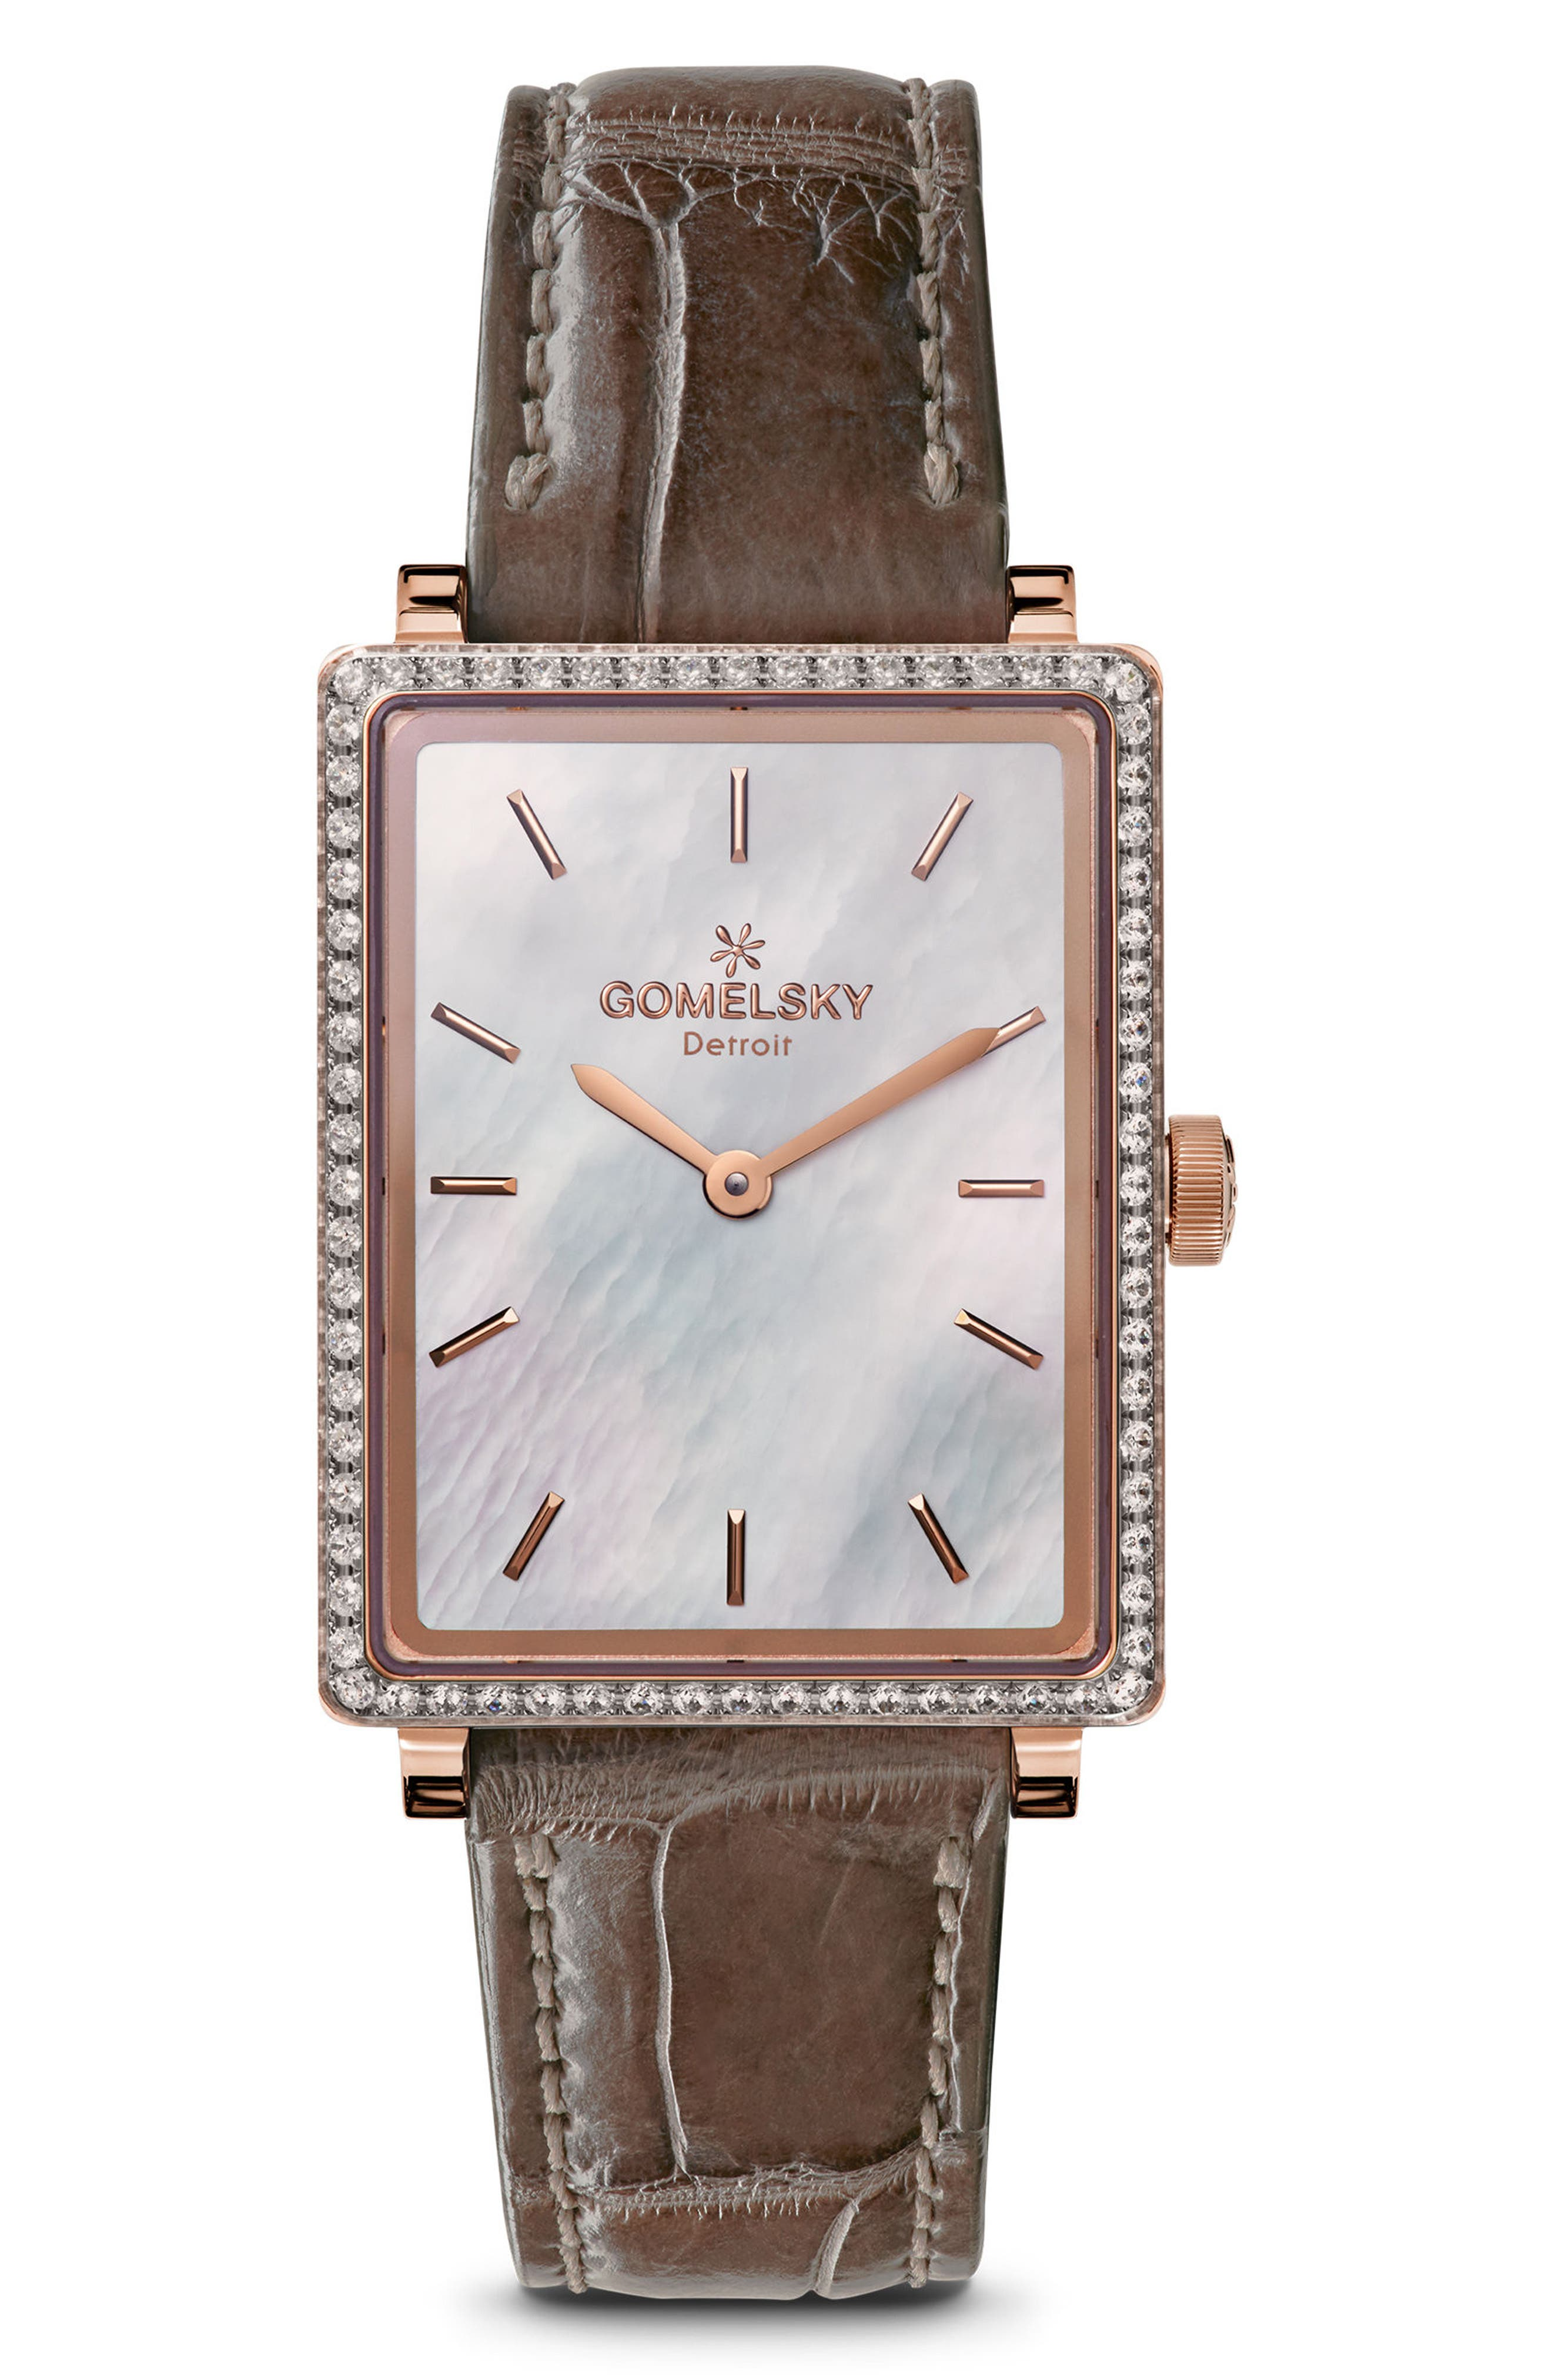 Main Image - Gomelsky The Shirley Fromer Diamond Alligator Strap Watch, 25mm x 32mm